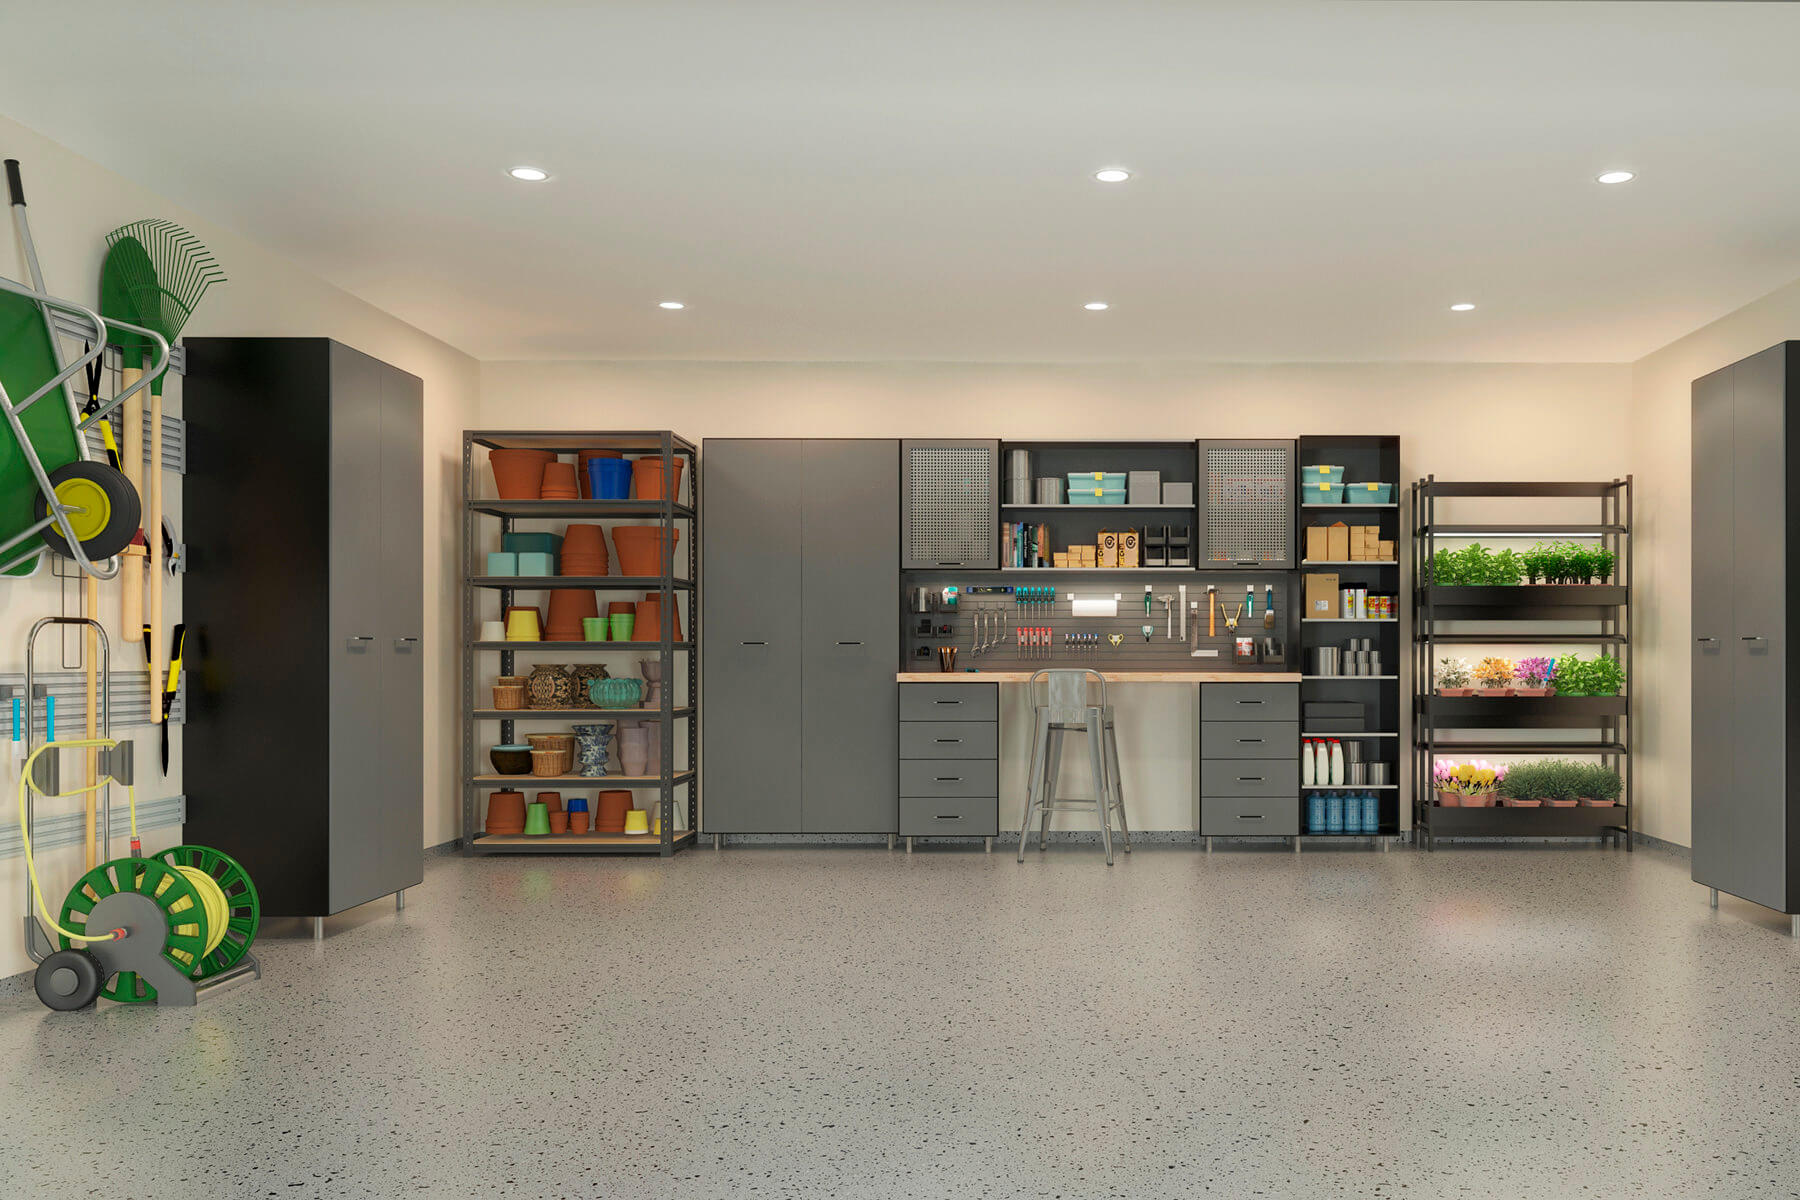 This garage obviously takes its influence from industrial design with extravagant use of gray in steel shelving and gray doors on melamine boxes. The cold aura of the heavy duty design is set off by an assortment of earth colors.